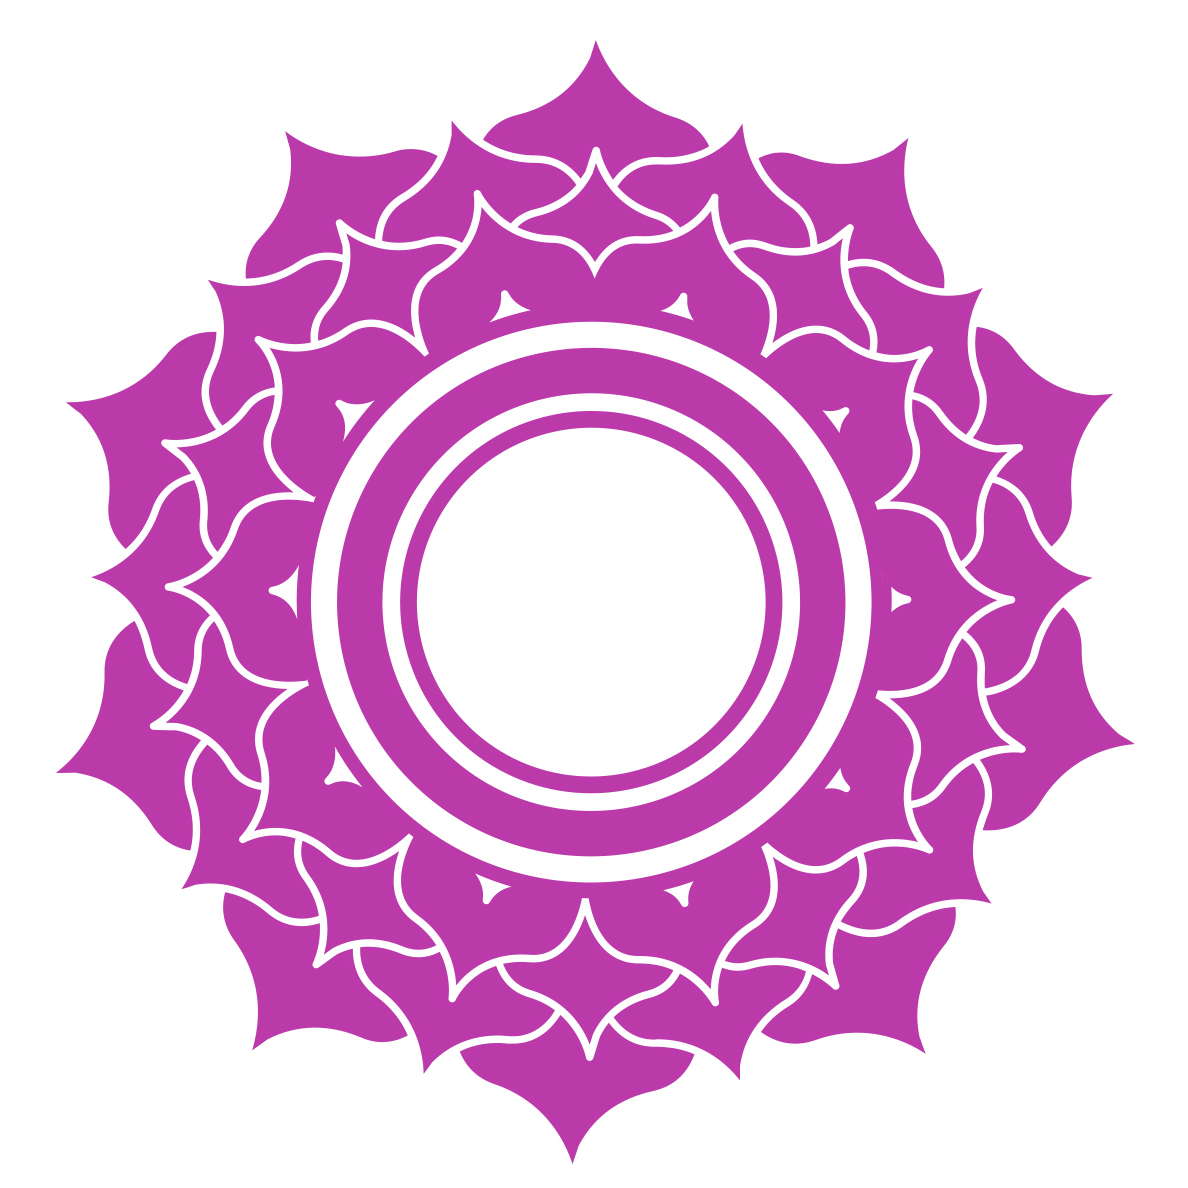 learn more about chakras - crown chakra